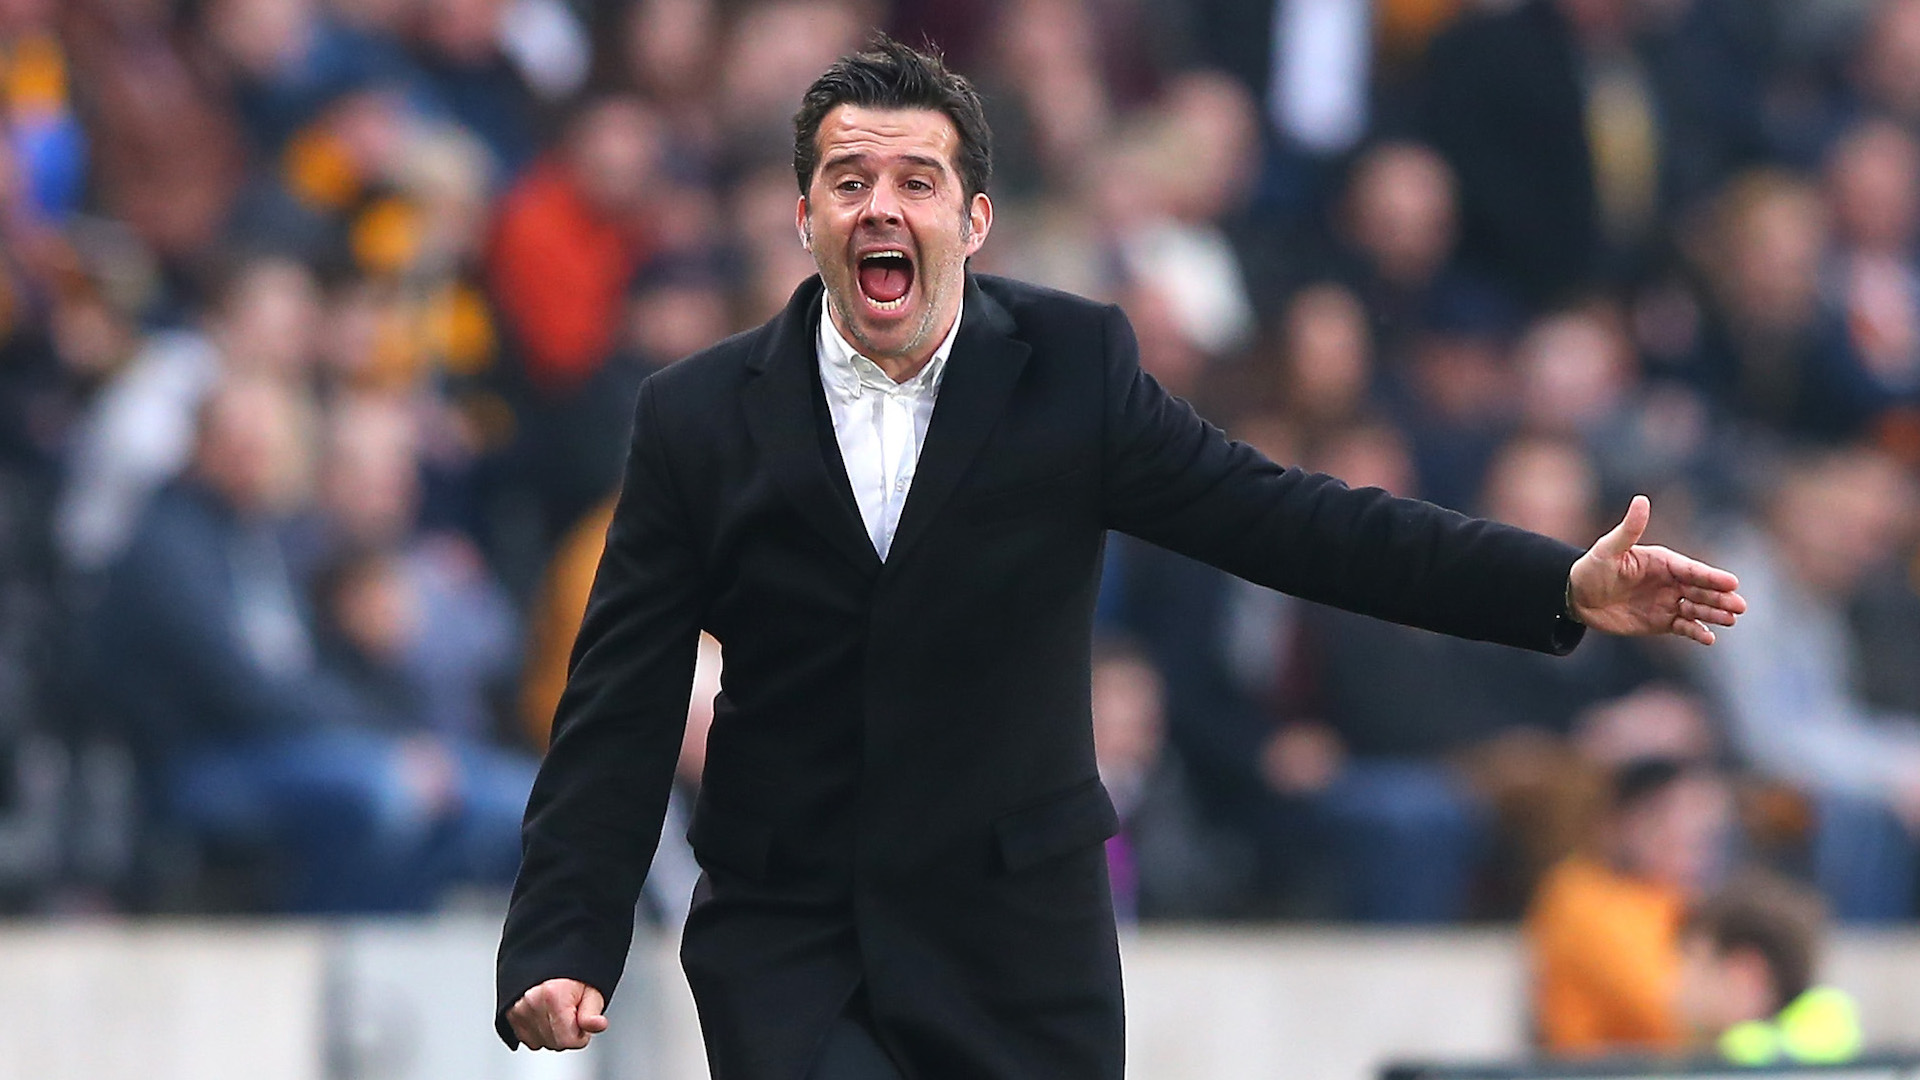 Treinador português Marco Silva sai do Hull City